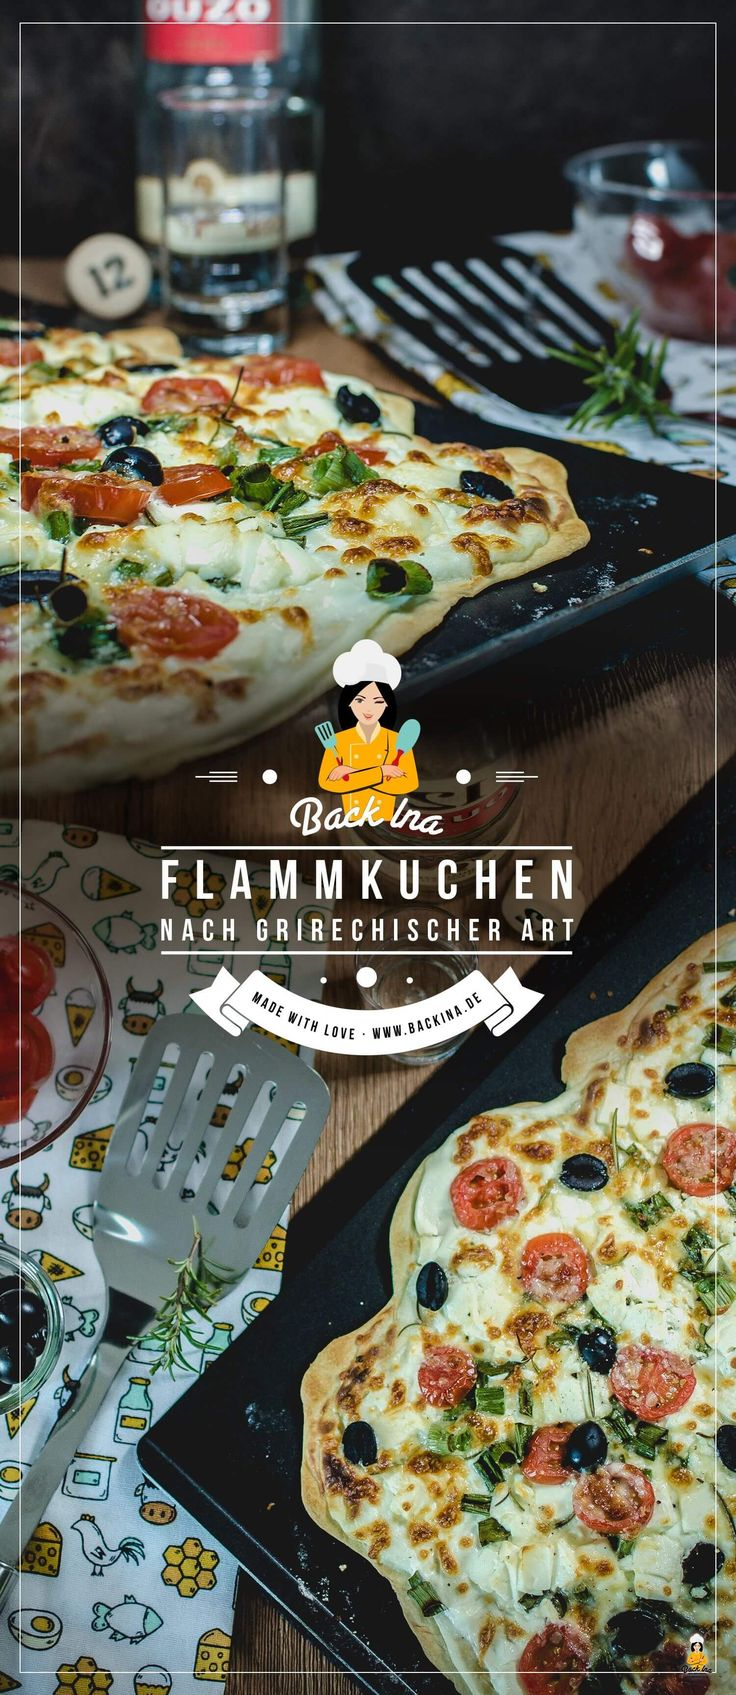 die besten 25 flammkuchen belag ideen auf pinterest flammkuchen rezept belag pizza belag und. Black Bedroom Furniture Sets. Home Design Ideas